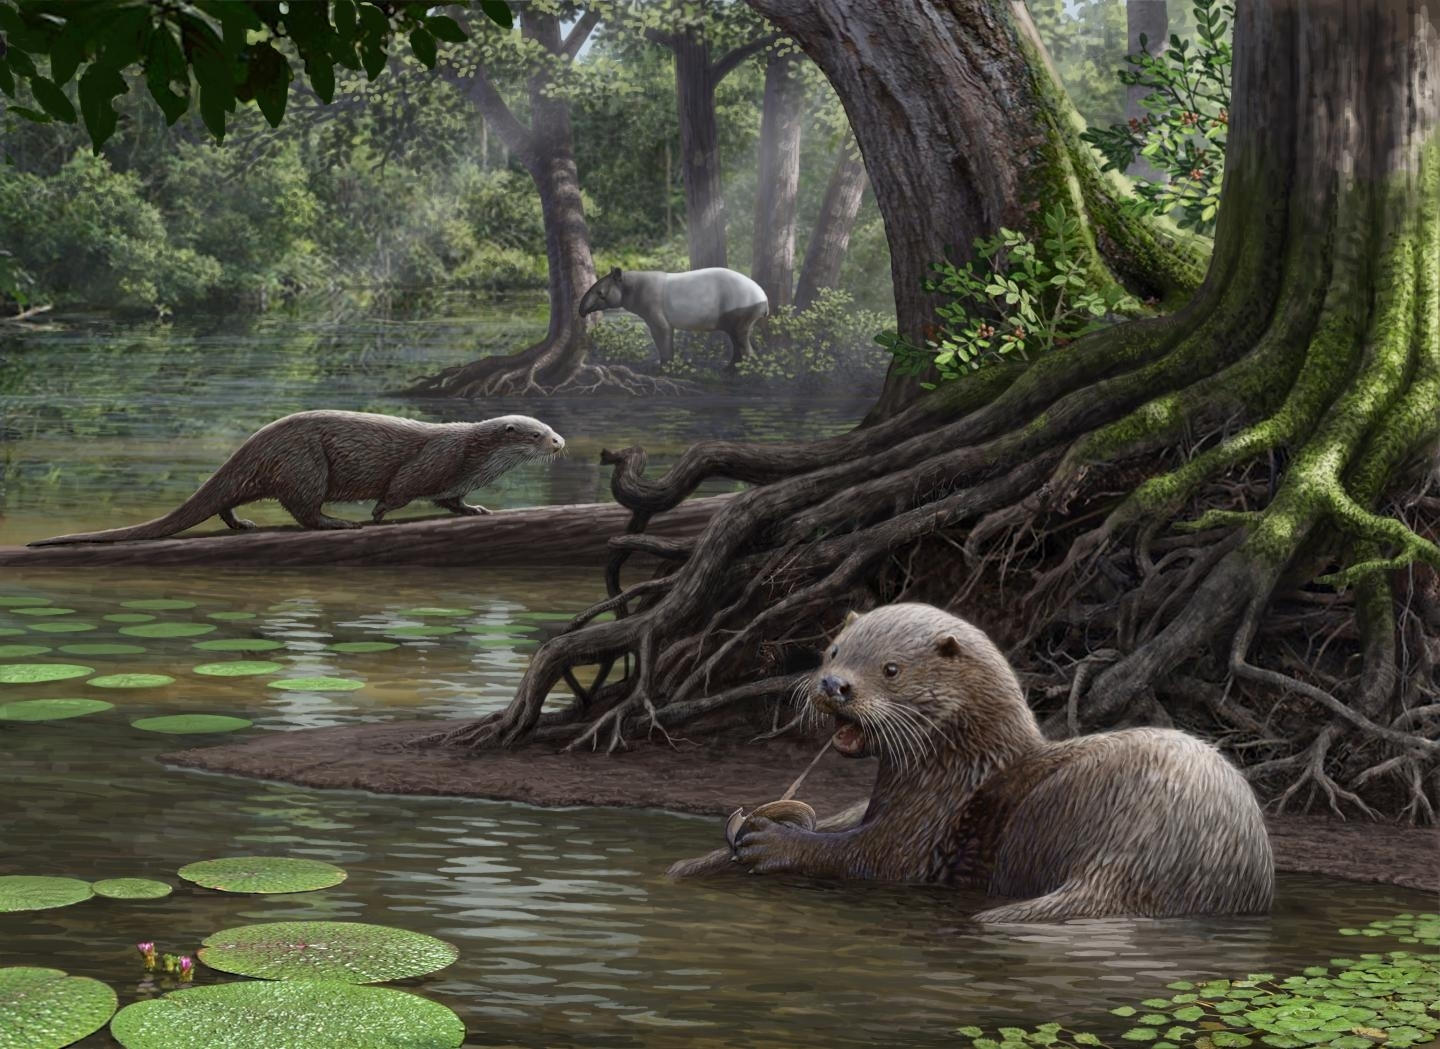 Meet the Rottweiler-Sized Prehistoric Otter With Teeth That Could Crunch Bone